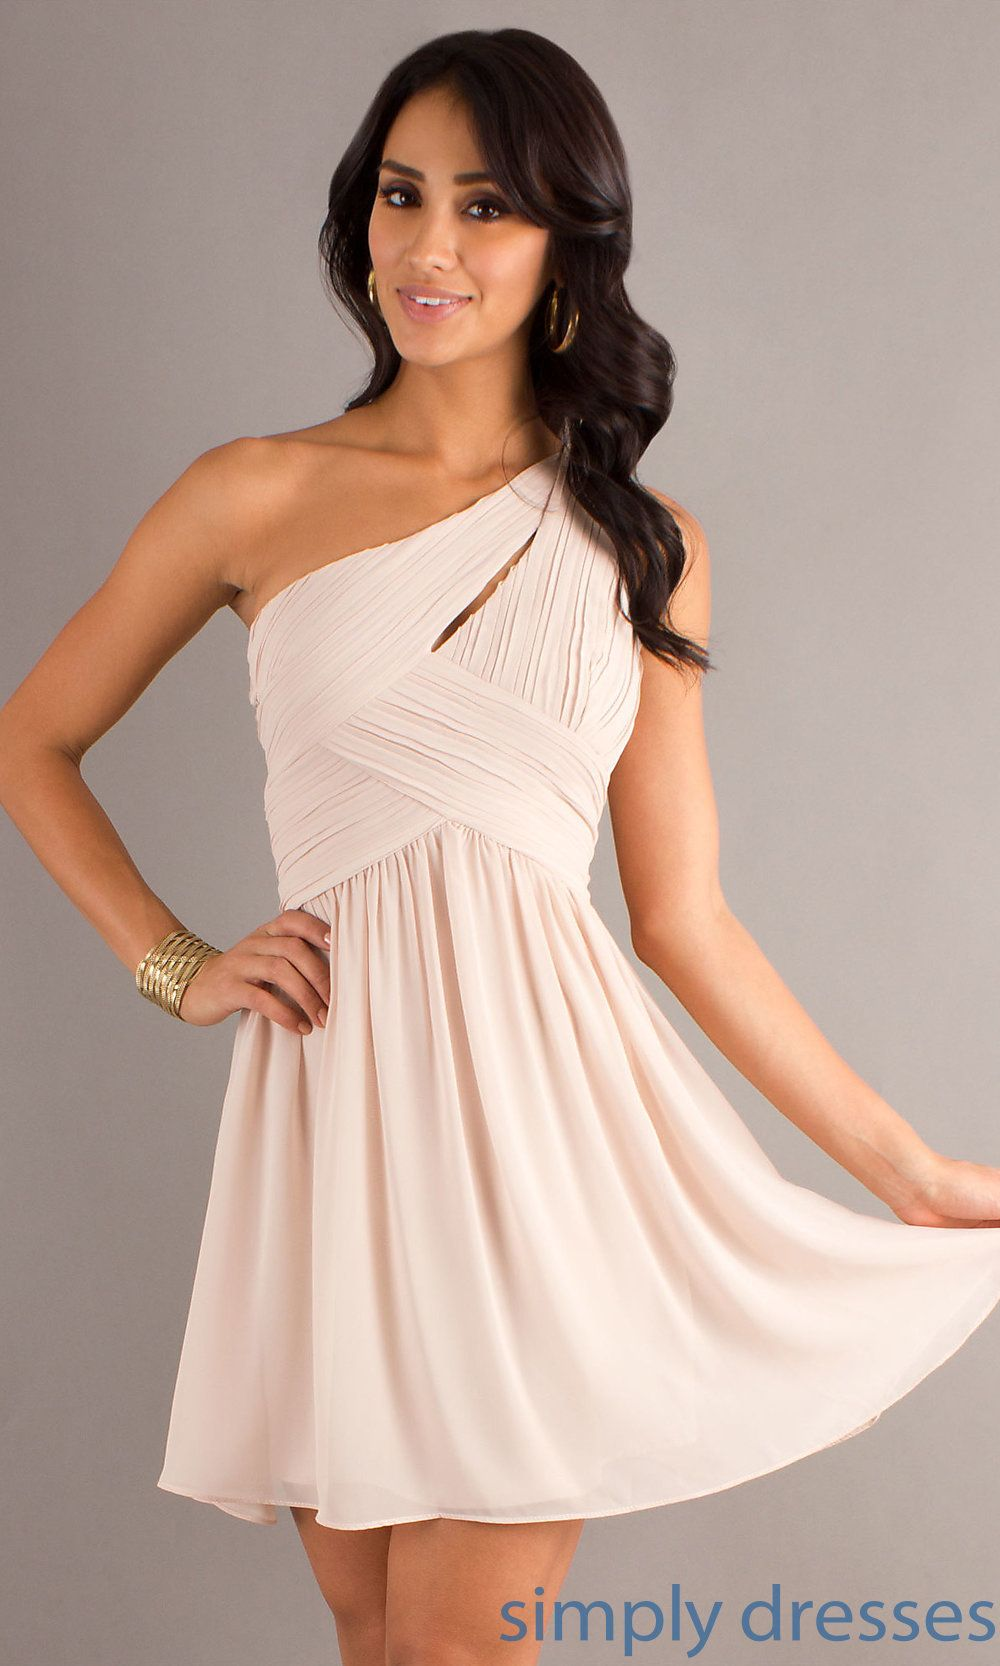 MT-MD-6058 - One Shoulder Short Semi-Formal Dress MT-MD-6058 ...